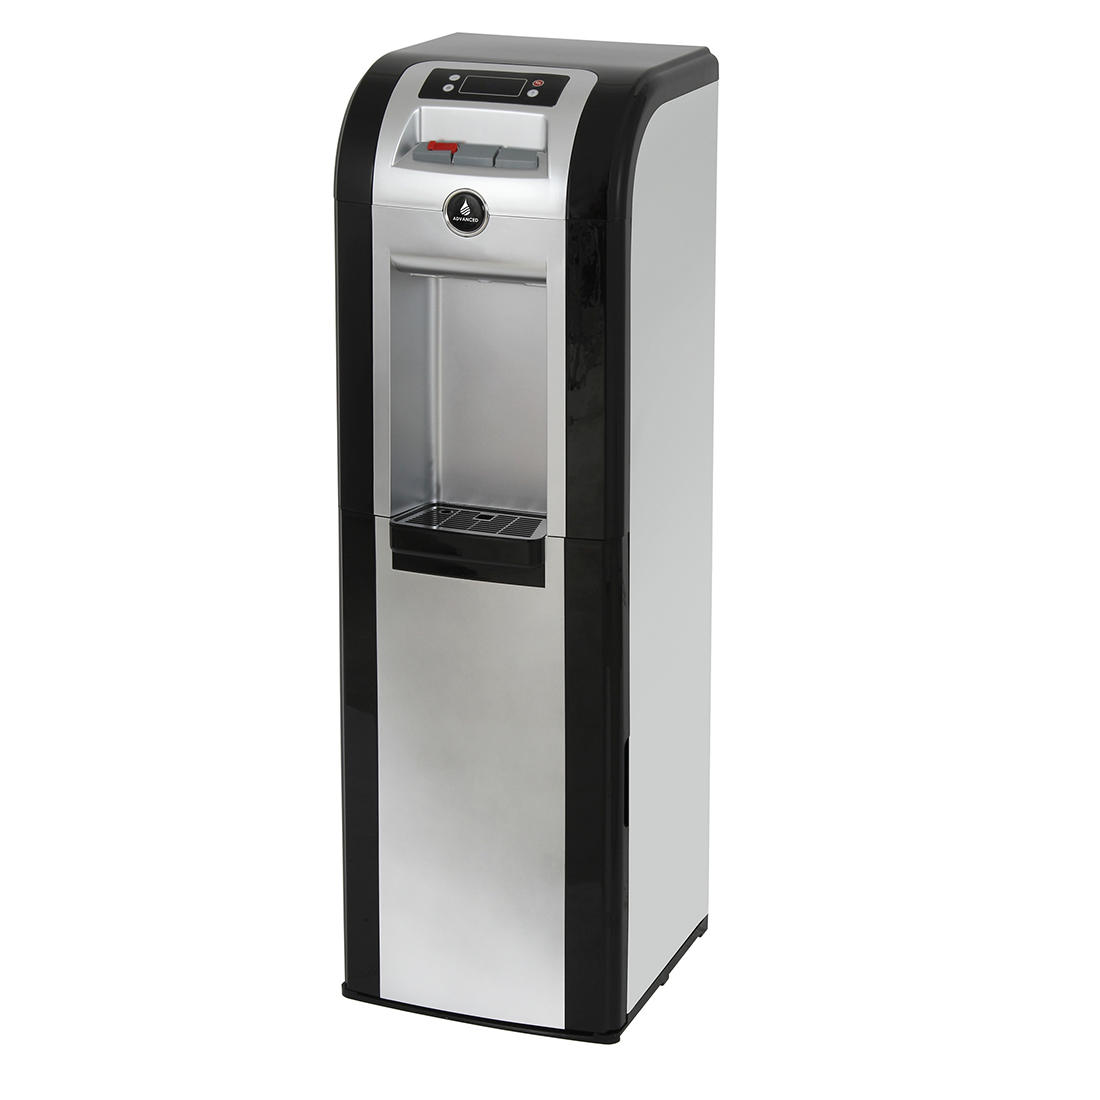 Vitapur Freestanding Bottom-Loading Water Dispenser - Black/Stainless Steel